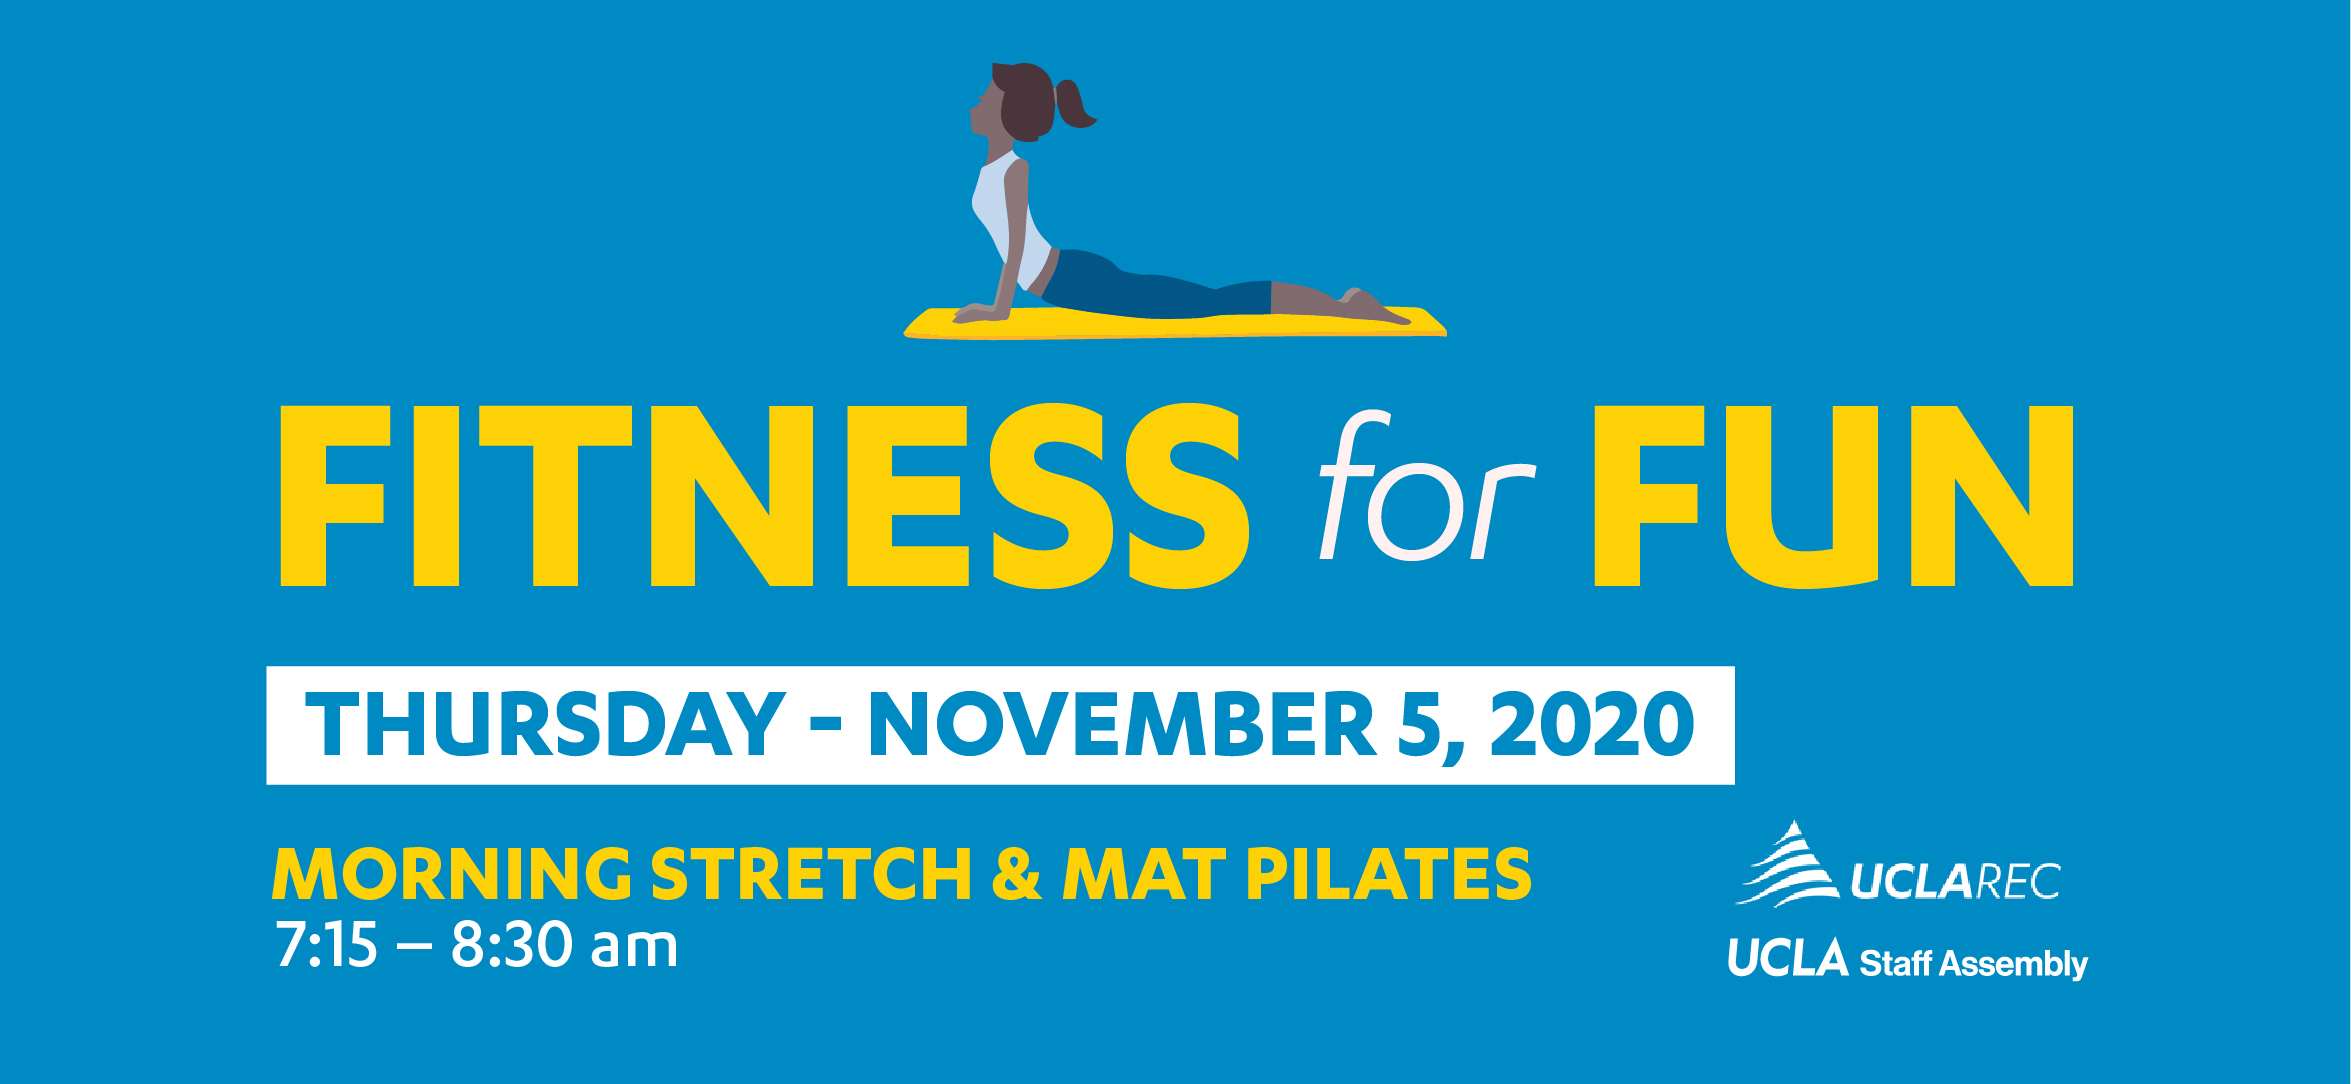 Fitness for Fun - Thursday, November 5, 2020 Morning Stretch and Mat Pilates